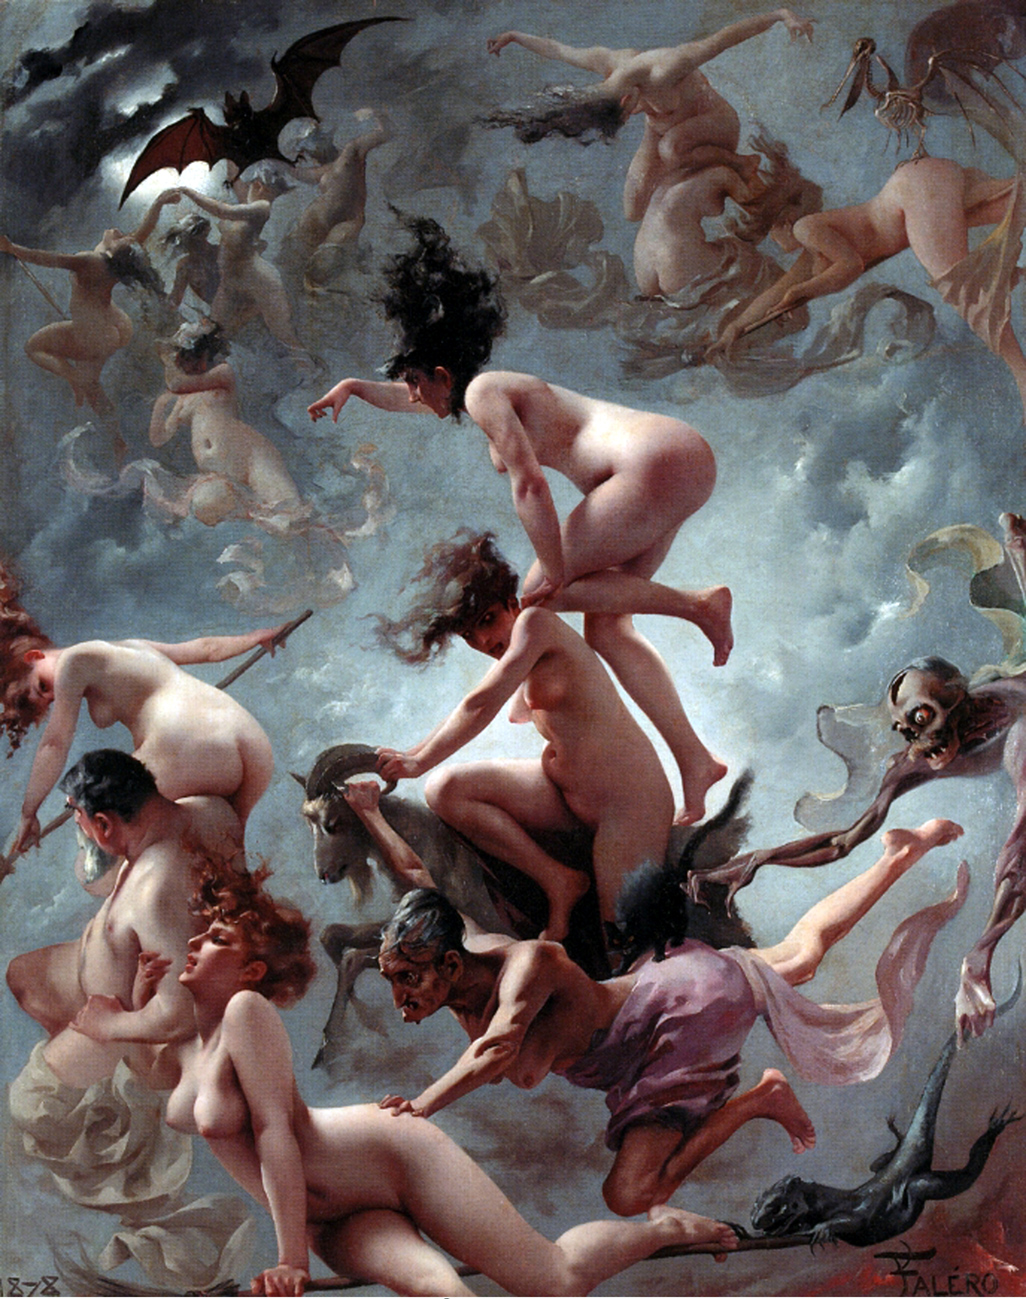 Faust's Vision, by Luis Ricardo Falero, 1878.